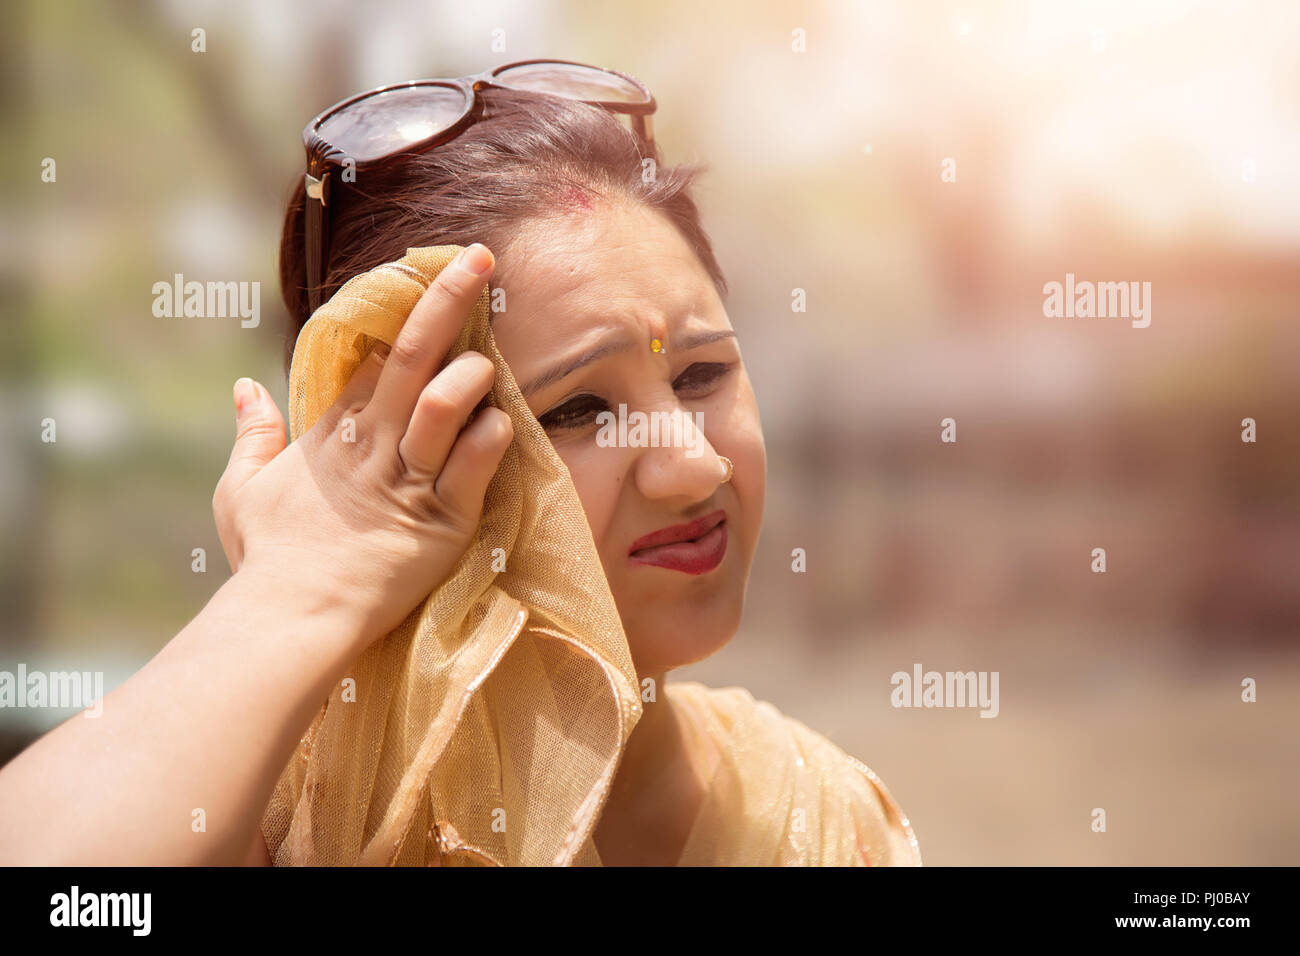 Woman shielding her eyes from sun. - Stock Image